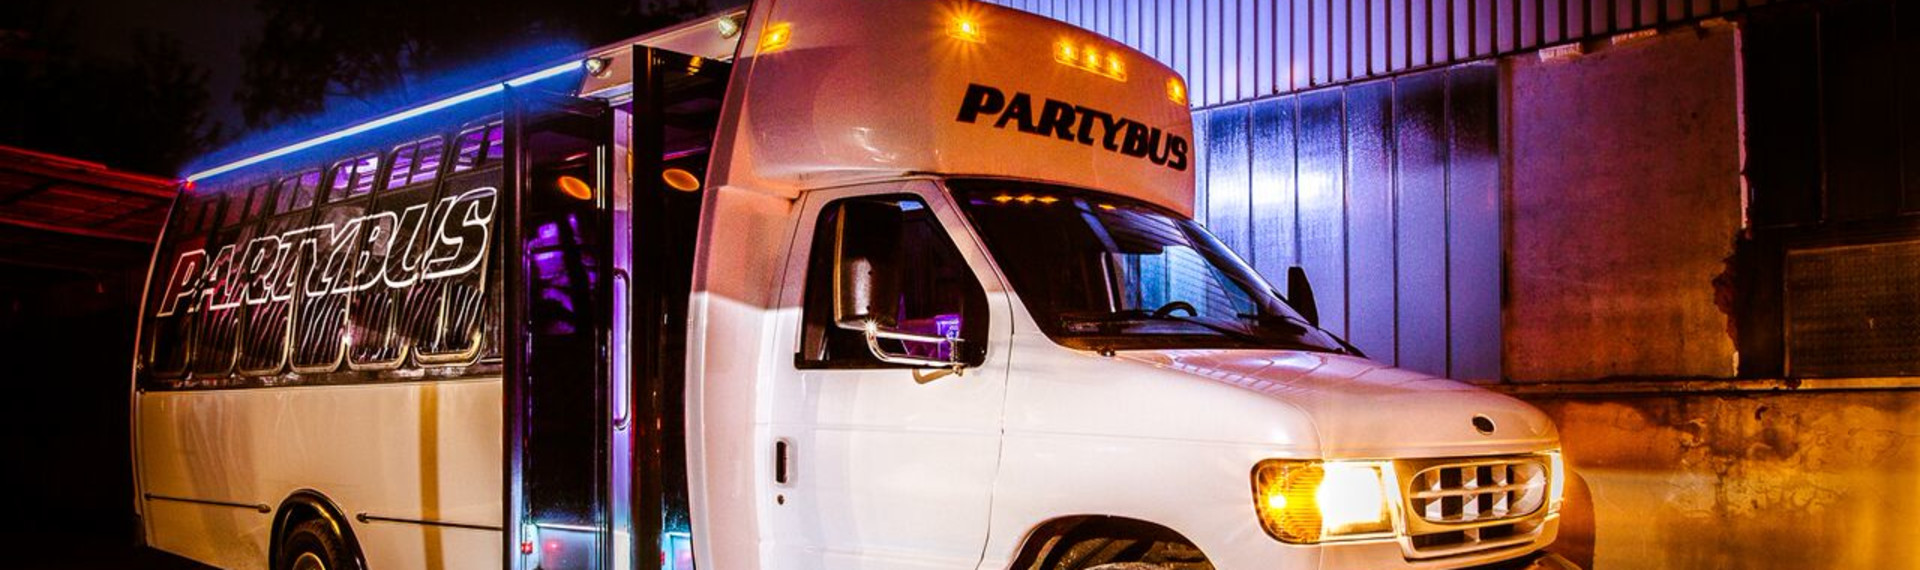 Cologne Party Bus (Max.17 people) image